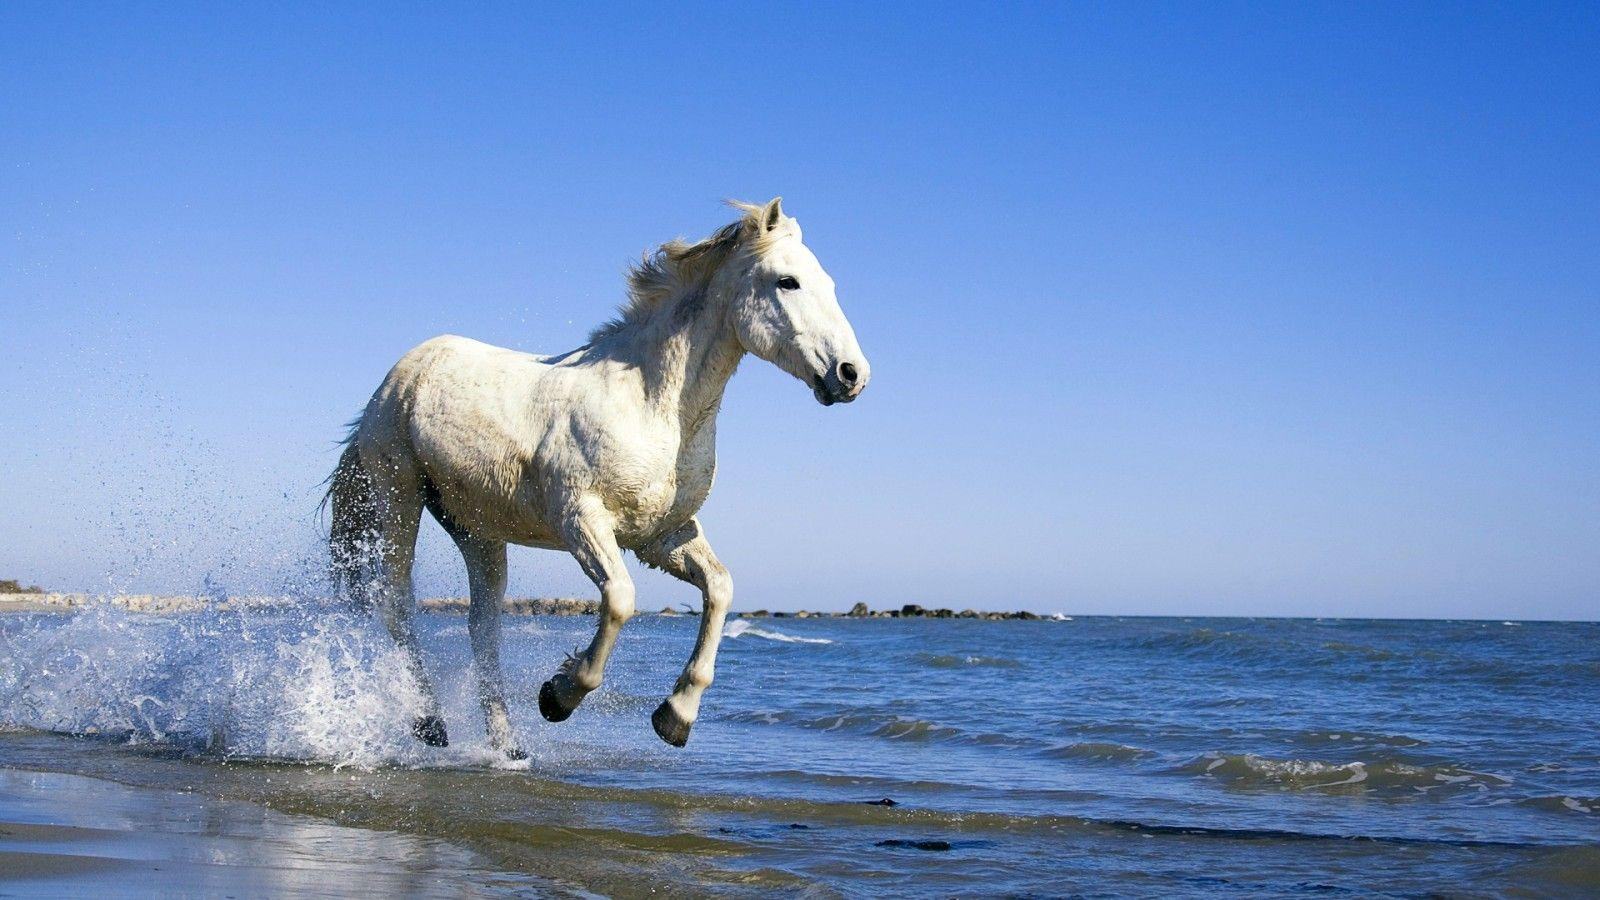 Horses White running on beach pictures images